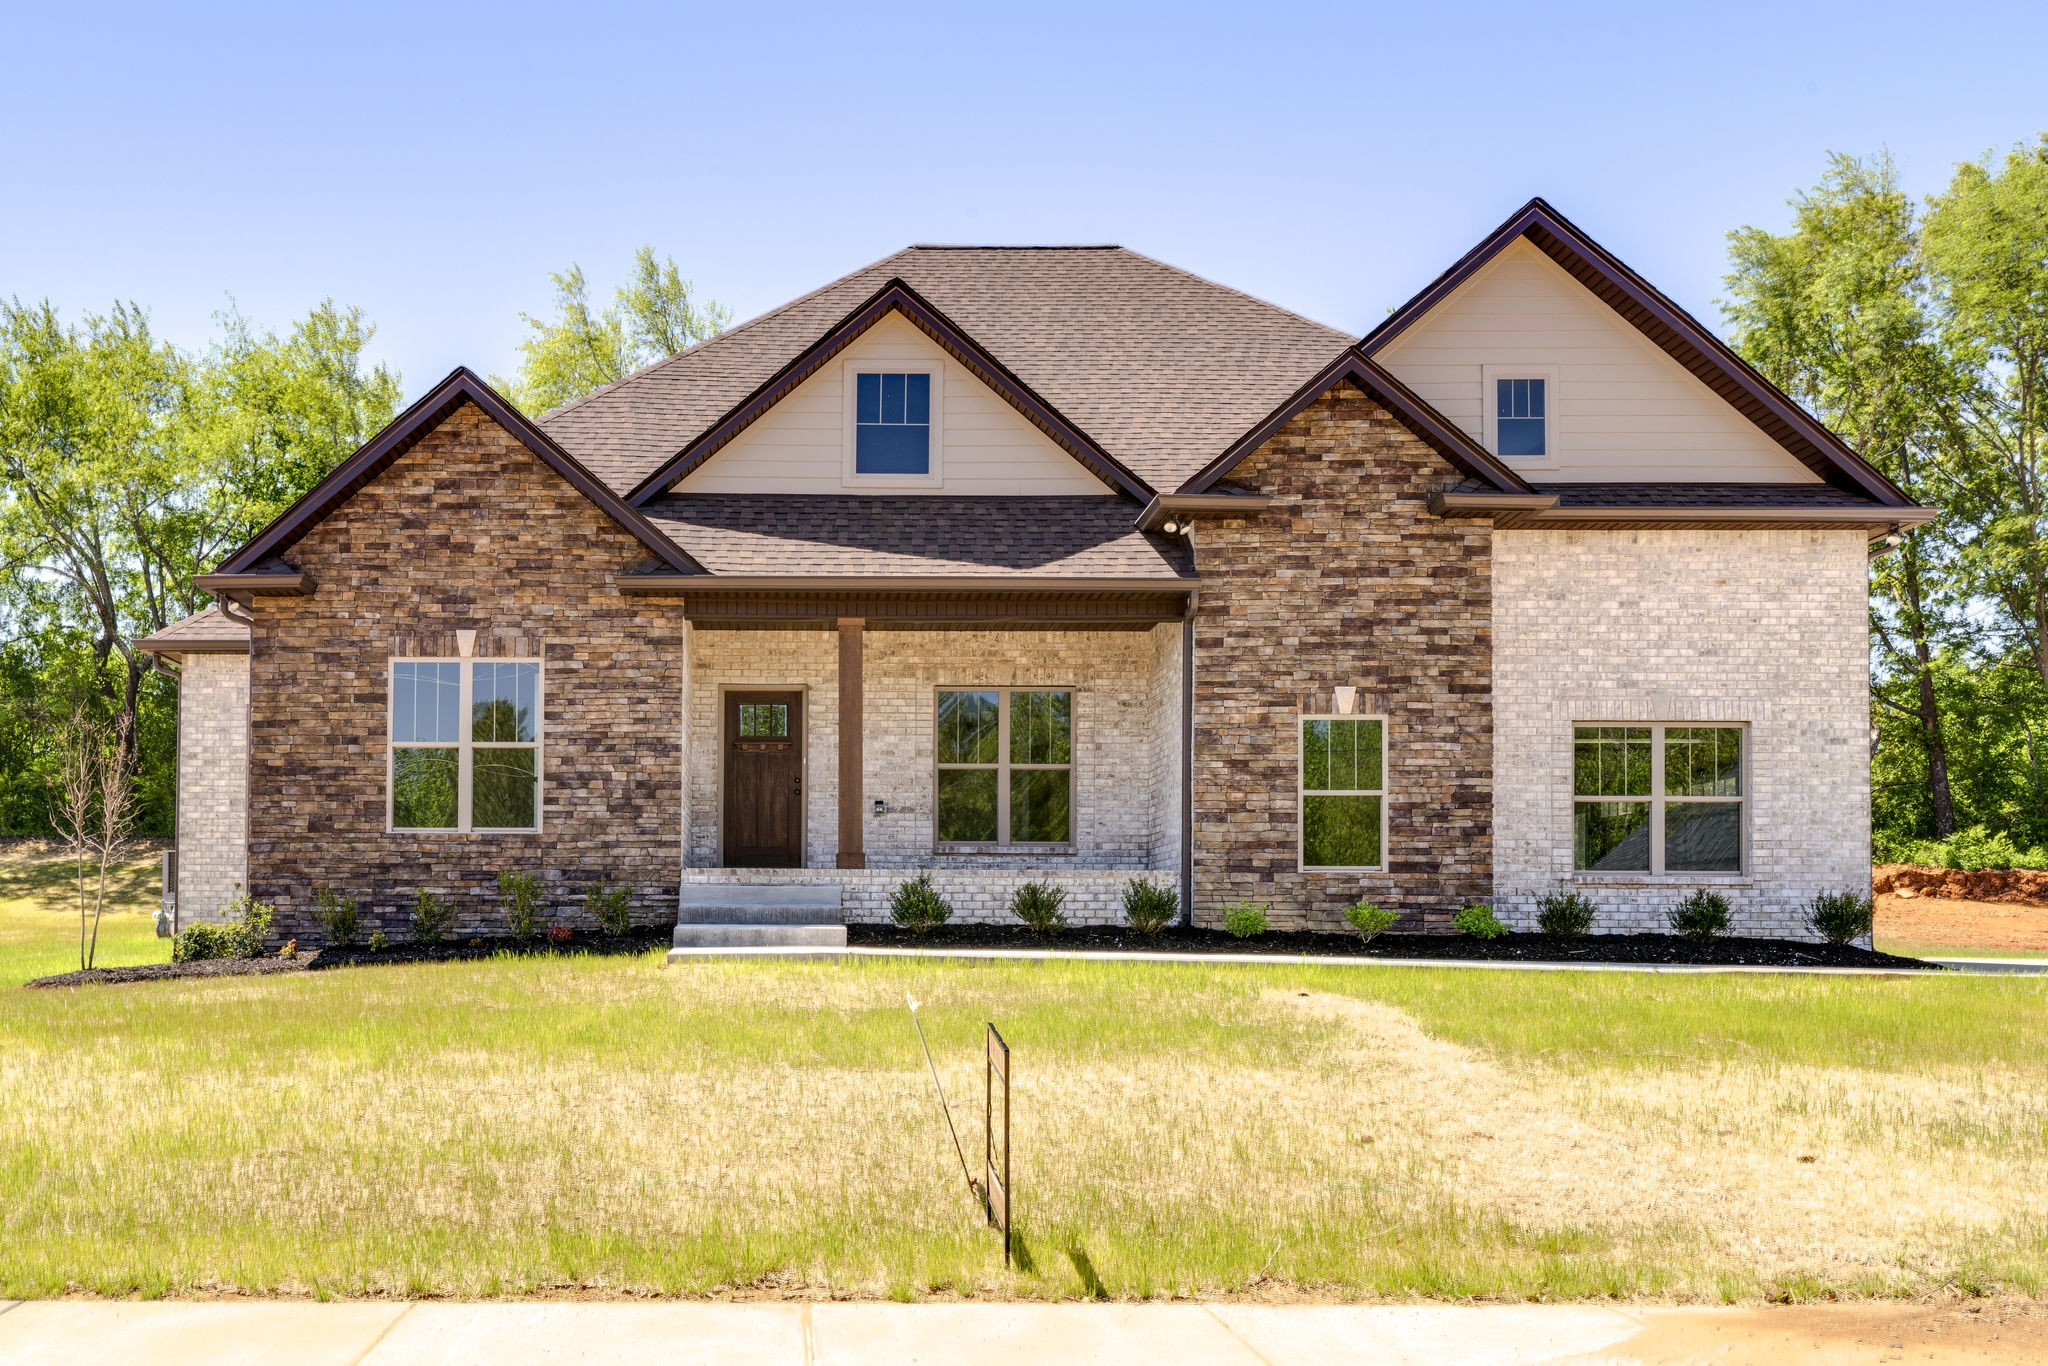 6060 W Mayflower Ct Property Photo - Greenbrier, TN real estate listing